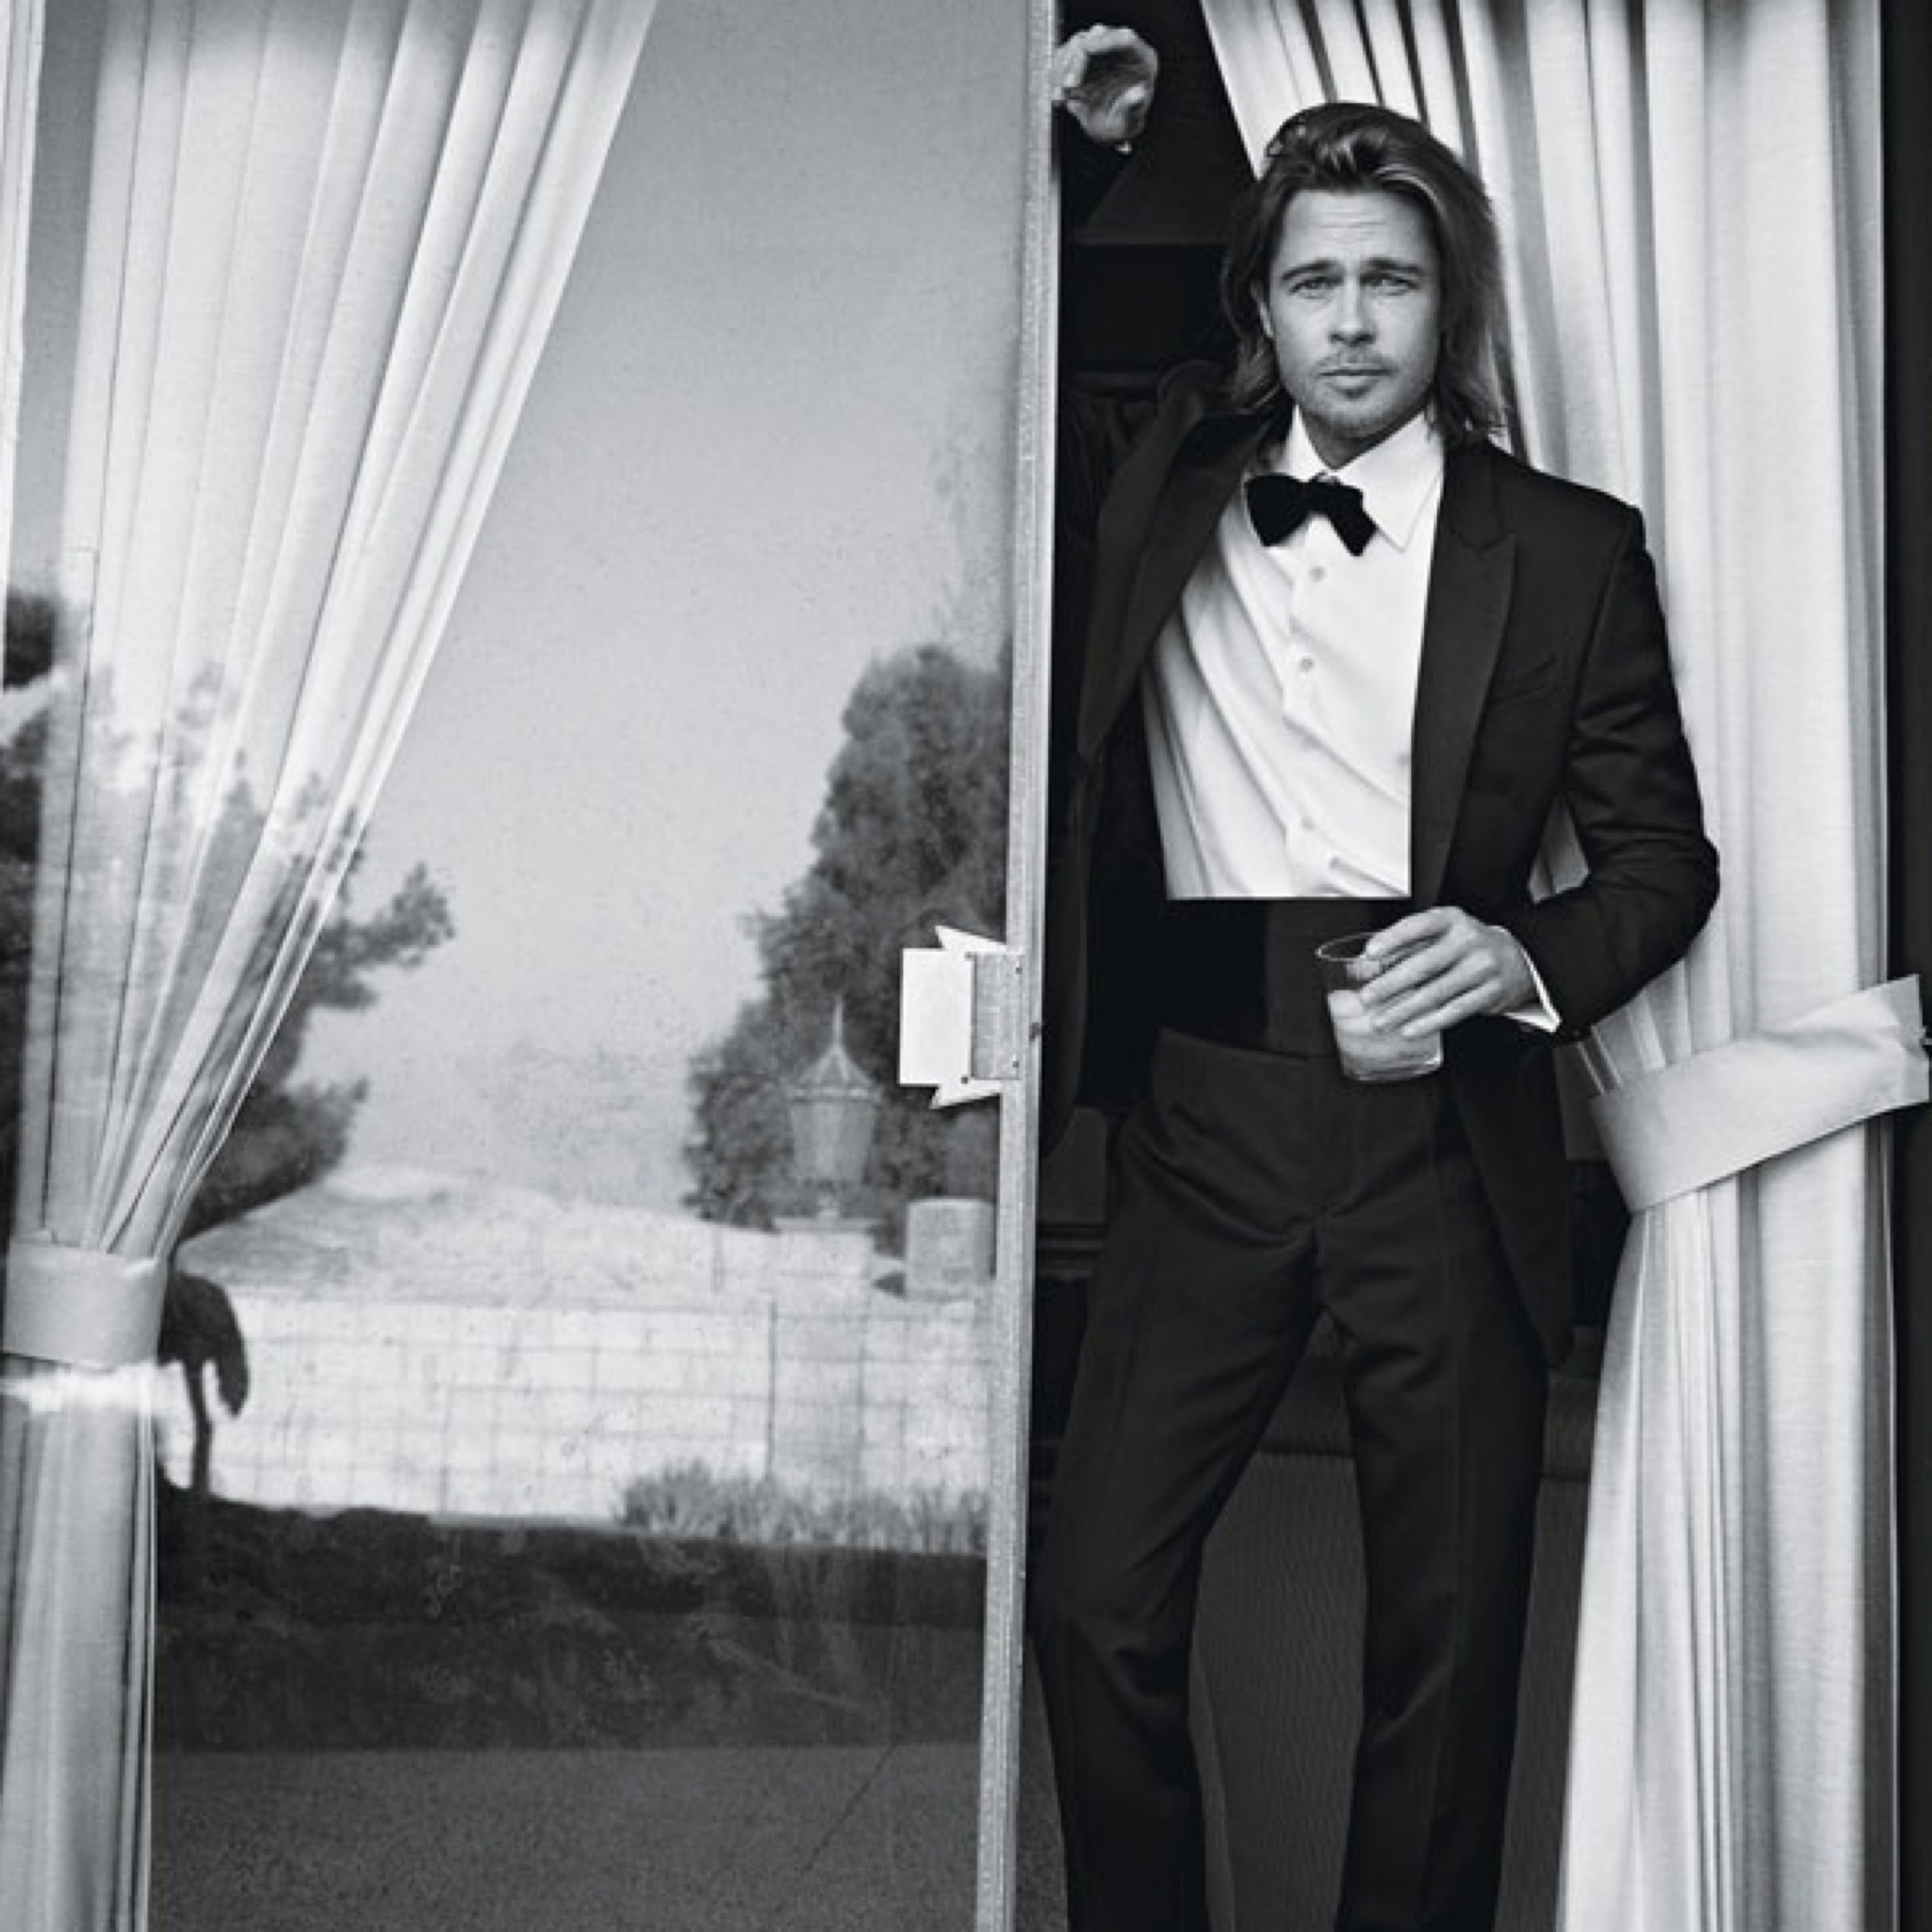 #4 (128 likes) :: Brad Pitt by Mario Sorrenti for W ... брэд питт инстаграм